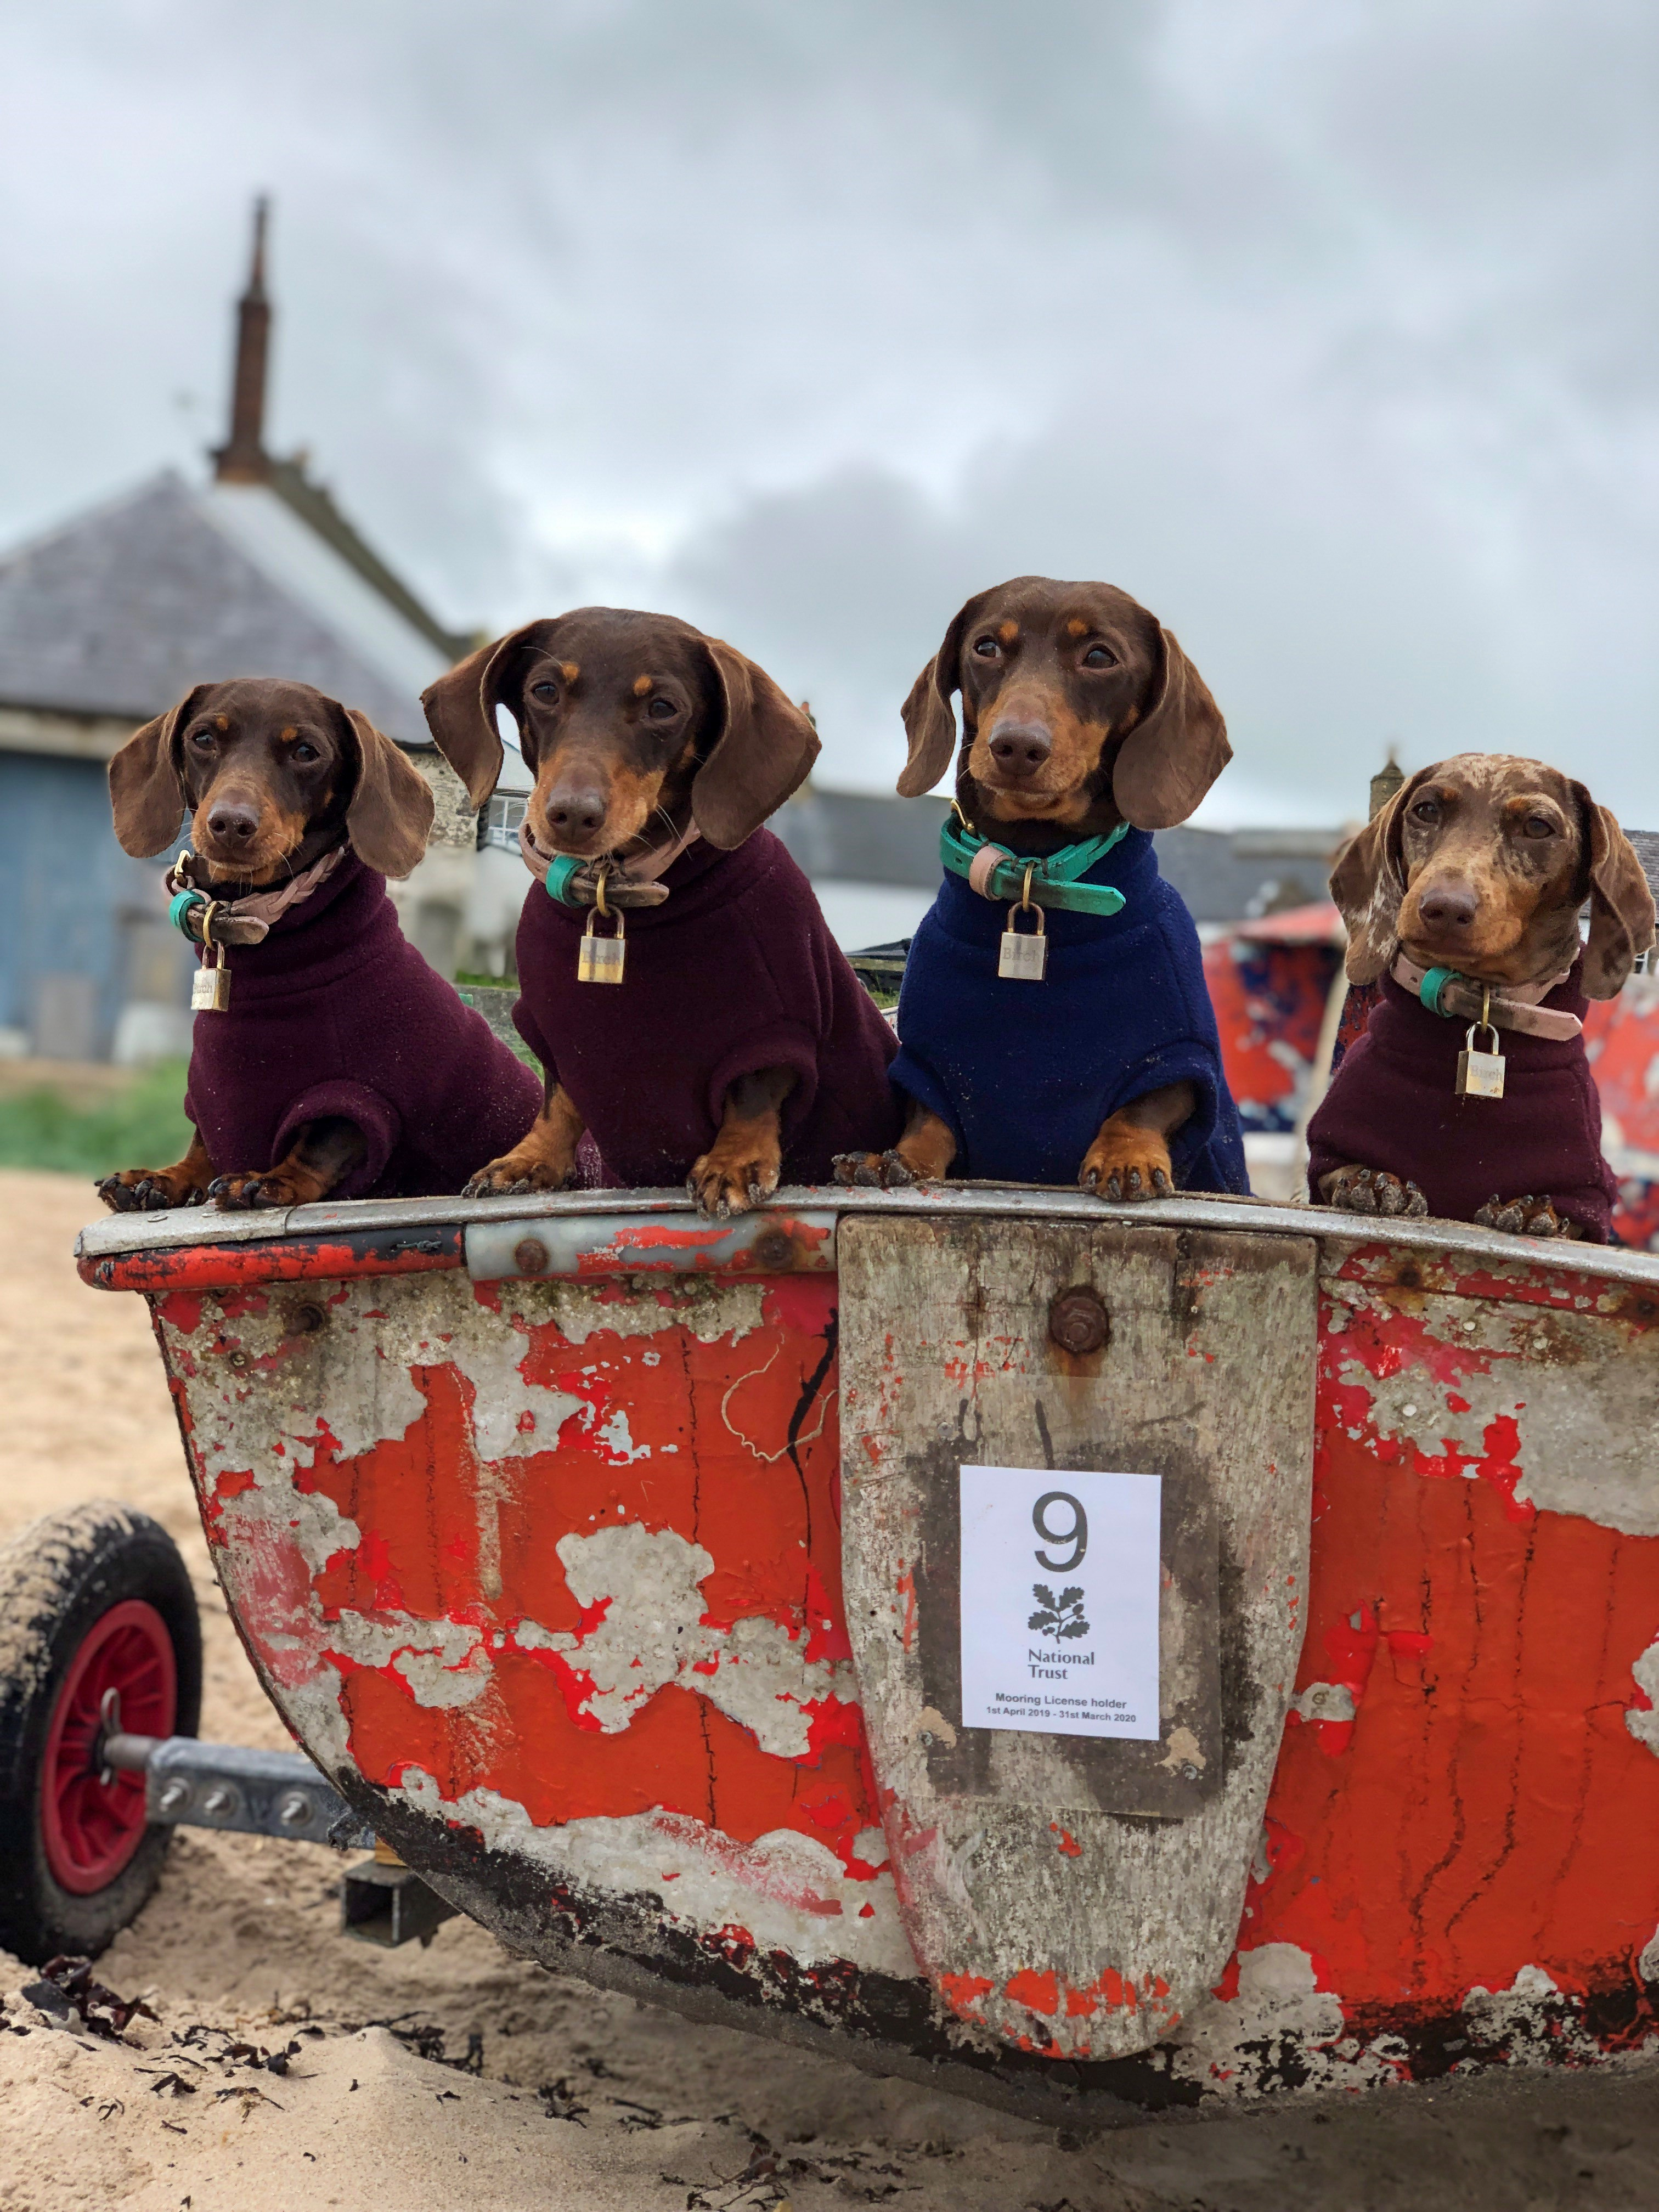 Third time's a charm - holiday cottages welcoming three dogs